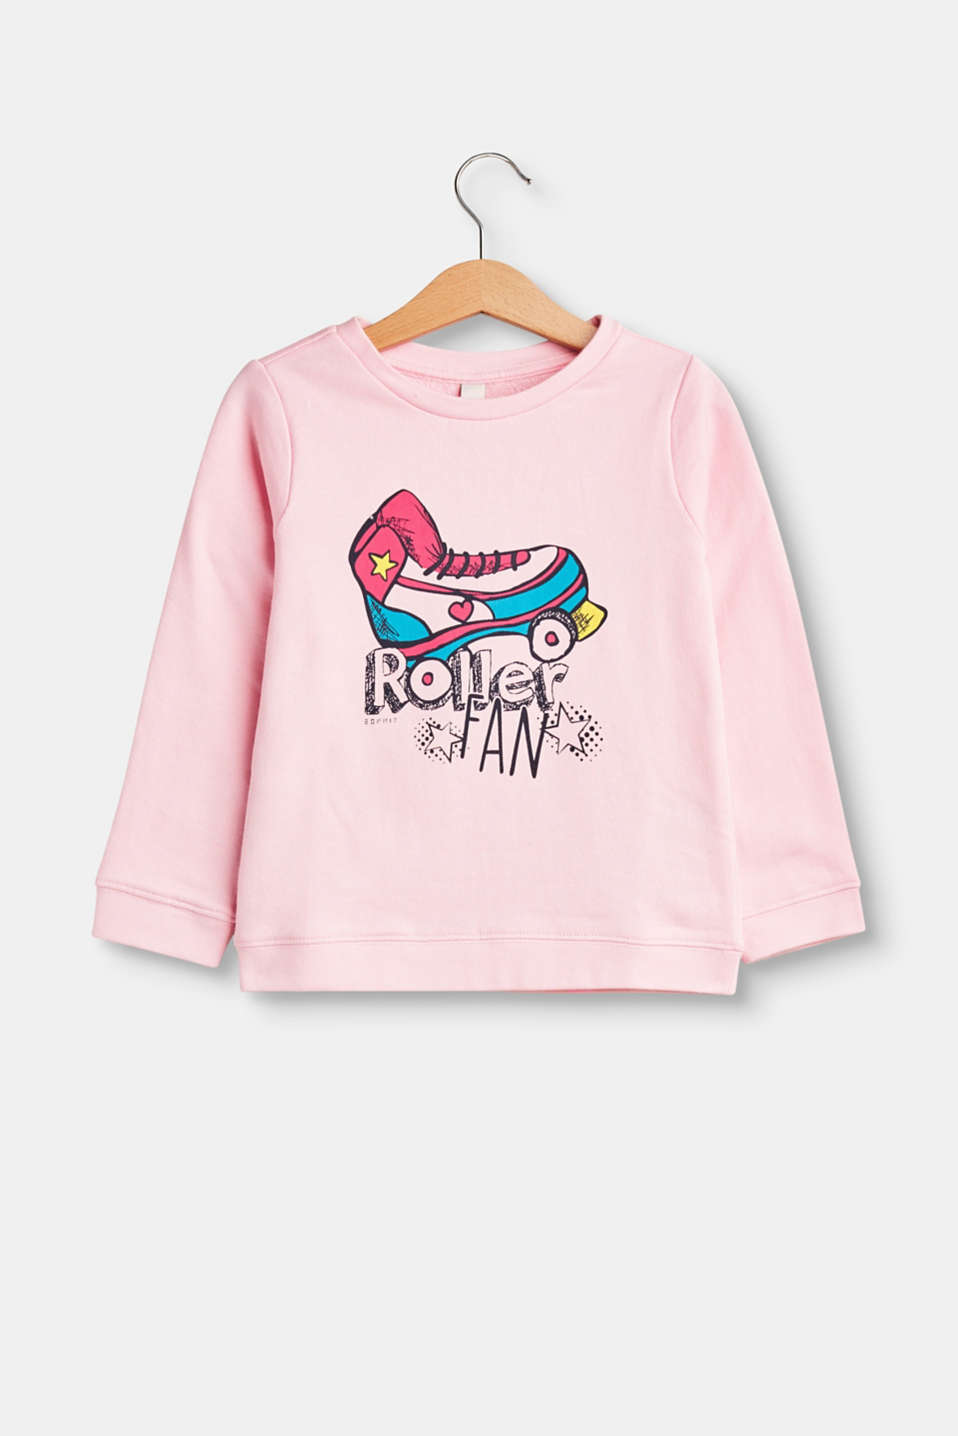 This soft cotton sweatshirt with a fancy roller skates print will win over girls hearts in an instant.